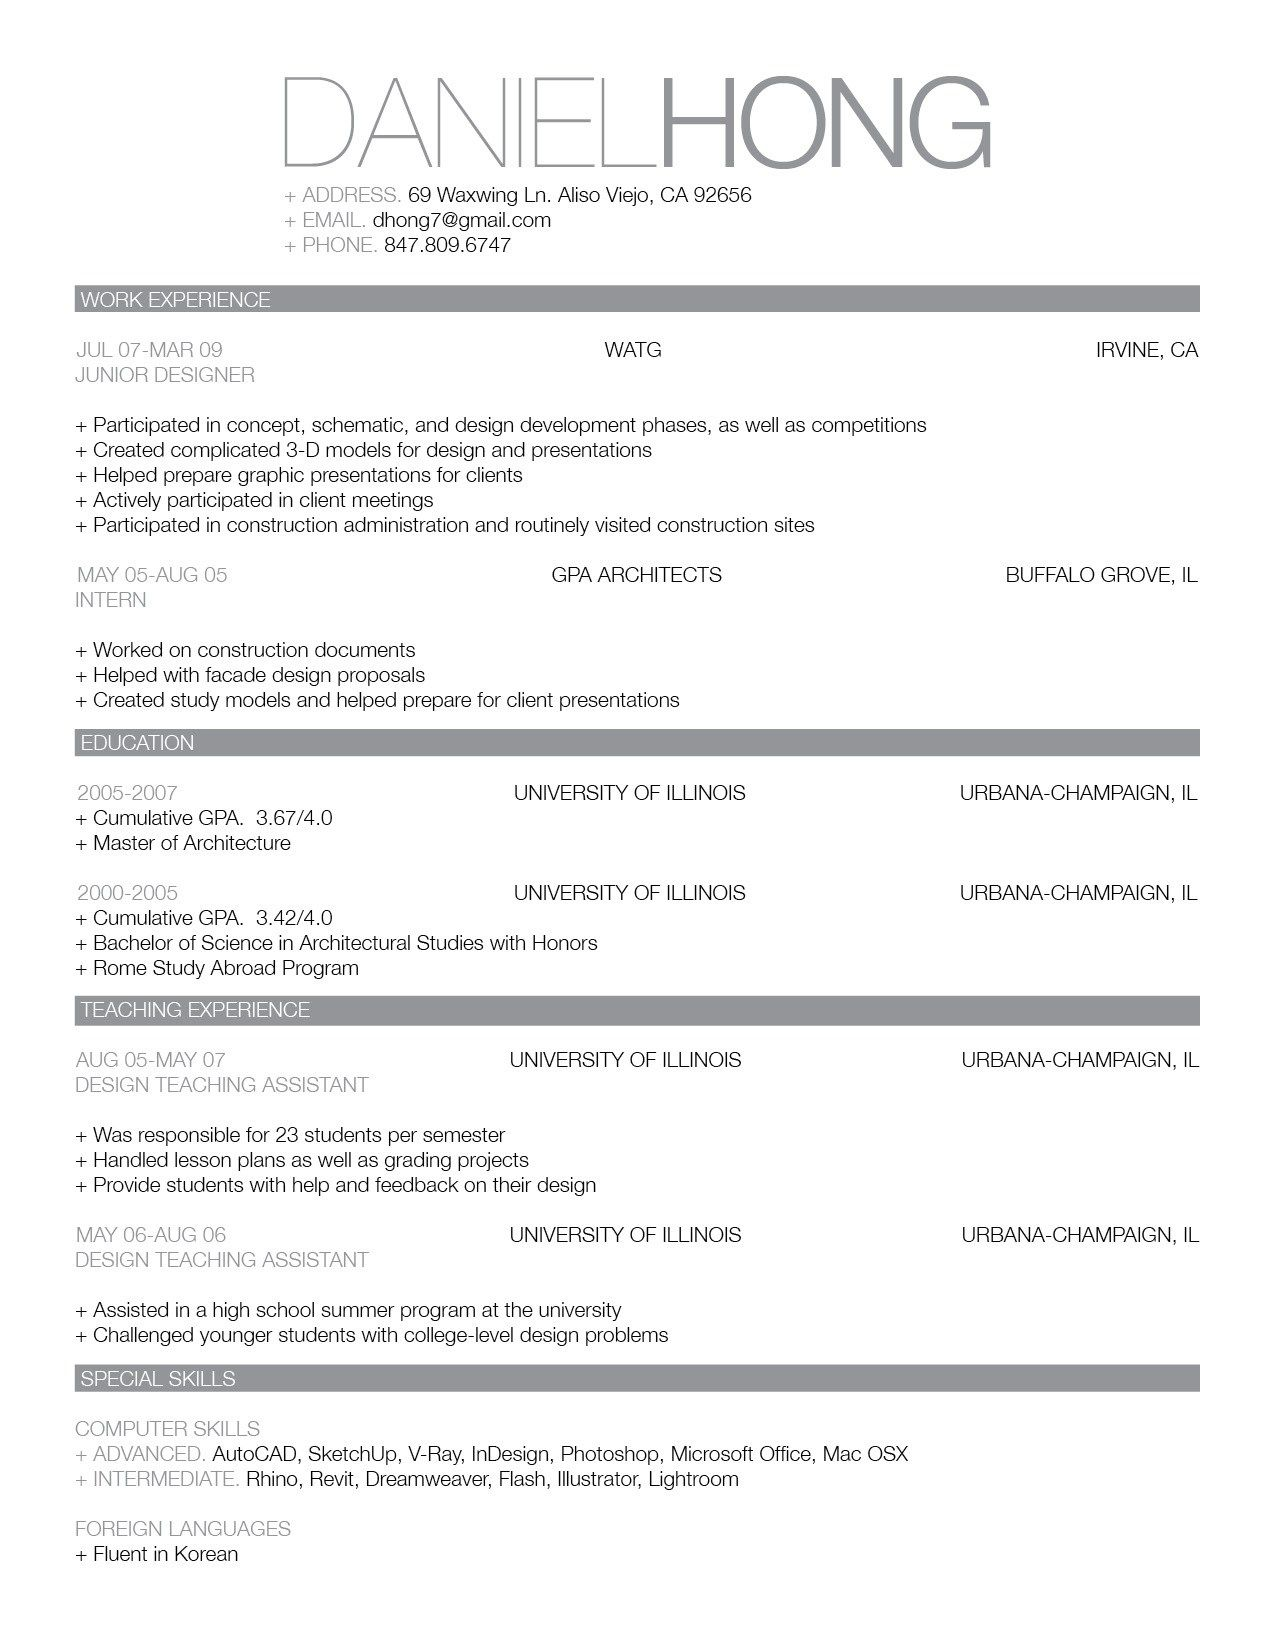 cv template spanish sample customer service resume professional templates word doc the all about template professional resume cv template professional cv. Resume Example. Resume CV Cover Letter